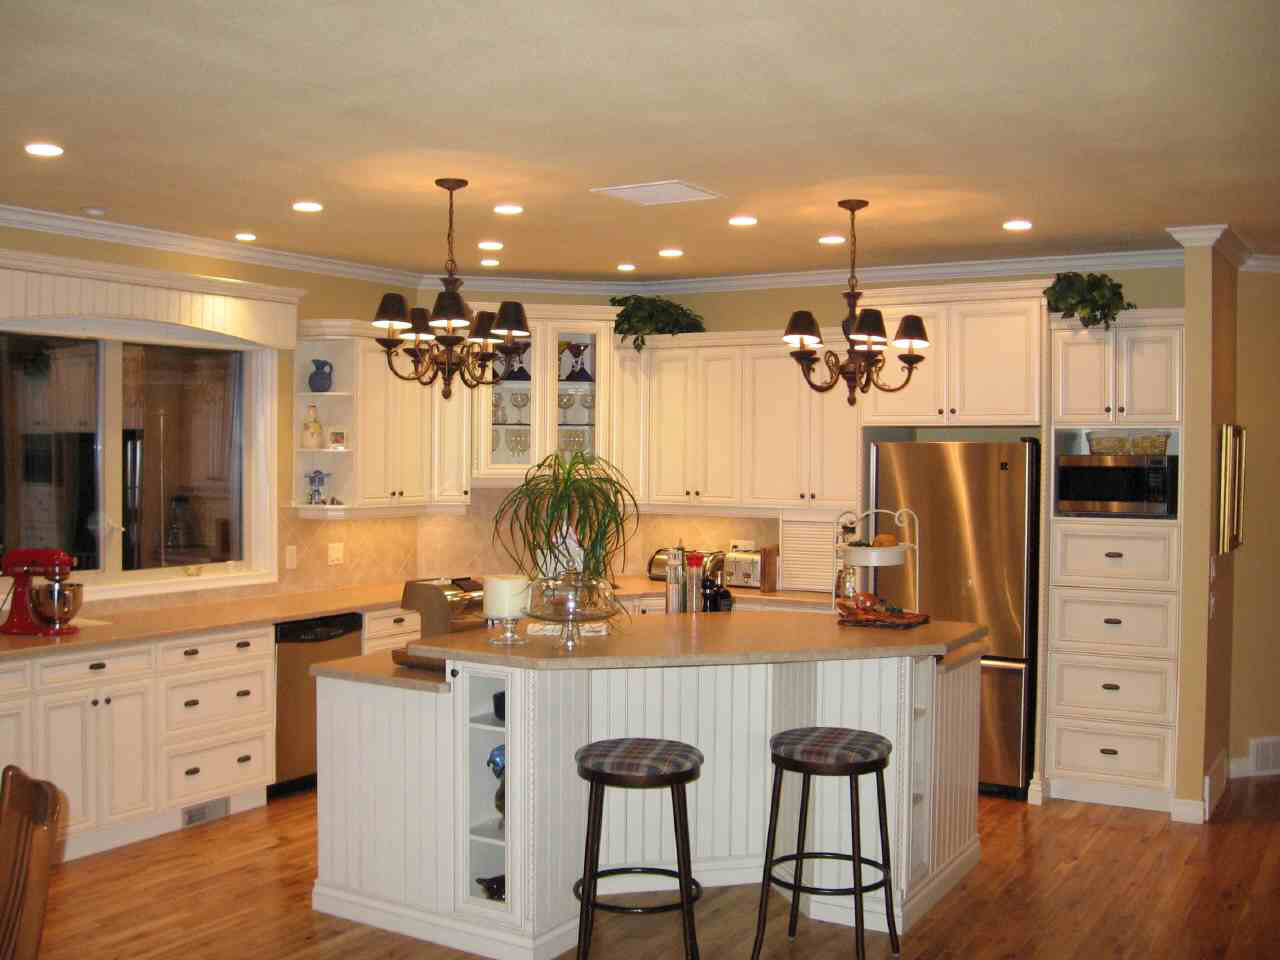 Wall kitchen cabinets Photo - 8